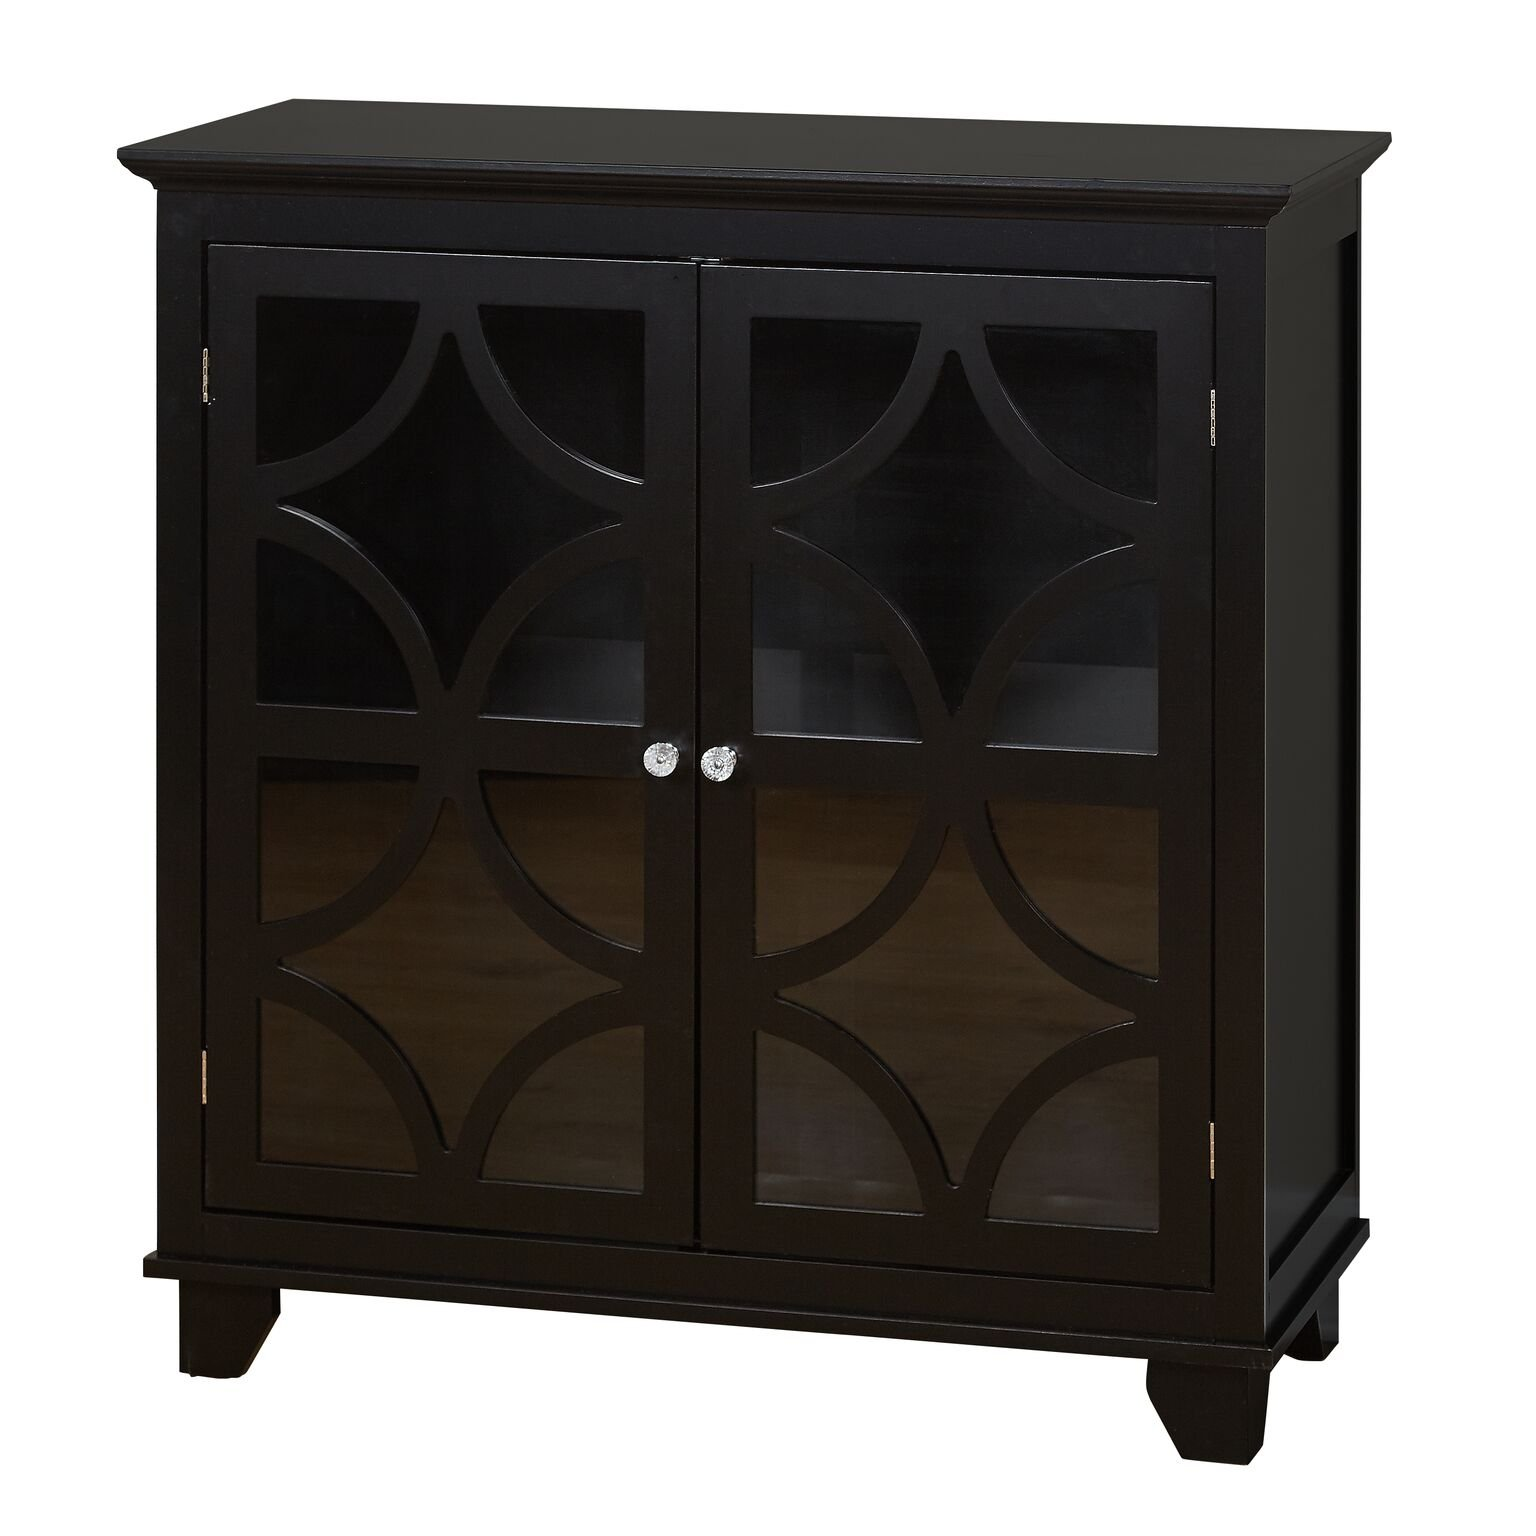 Target Marketing Systems Sydney Accent Storage Cabinet with Trellis Overlay Glass Doors and 2 Shelves, Black by Target Marketing Systems